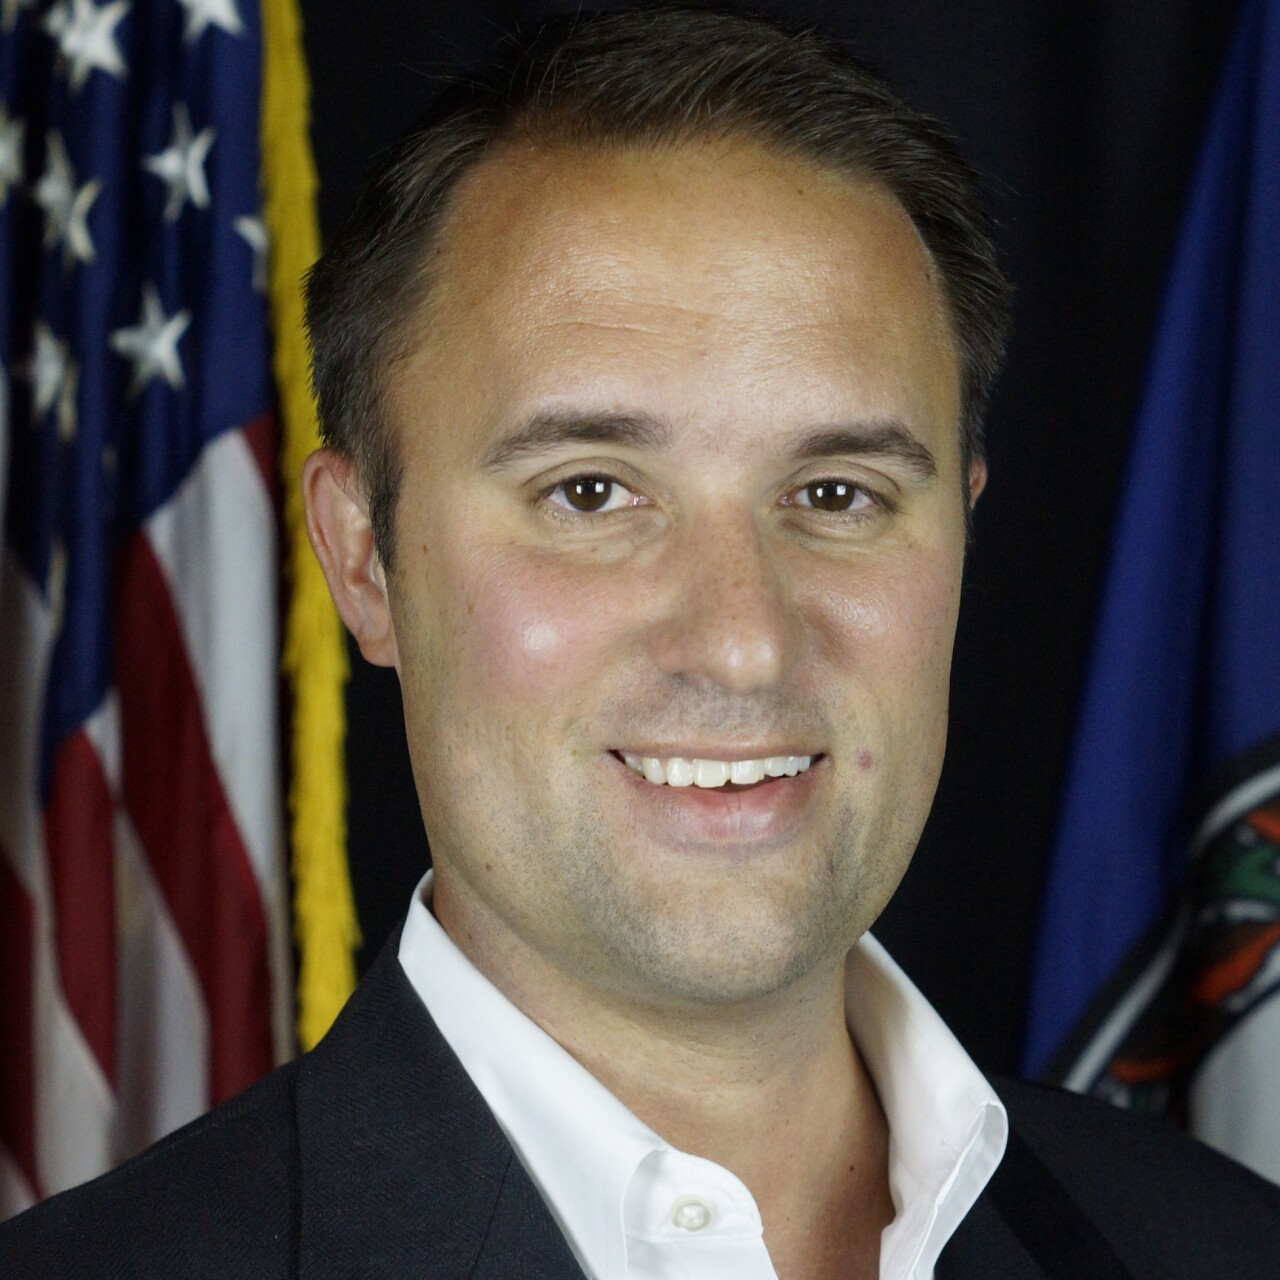 Interview with Republican Party Attorney General candidate Jason Miyares